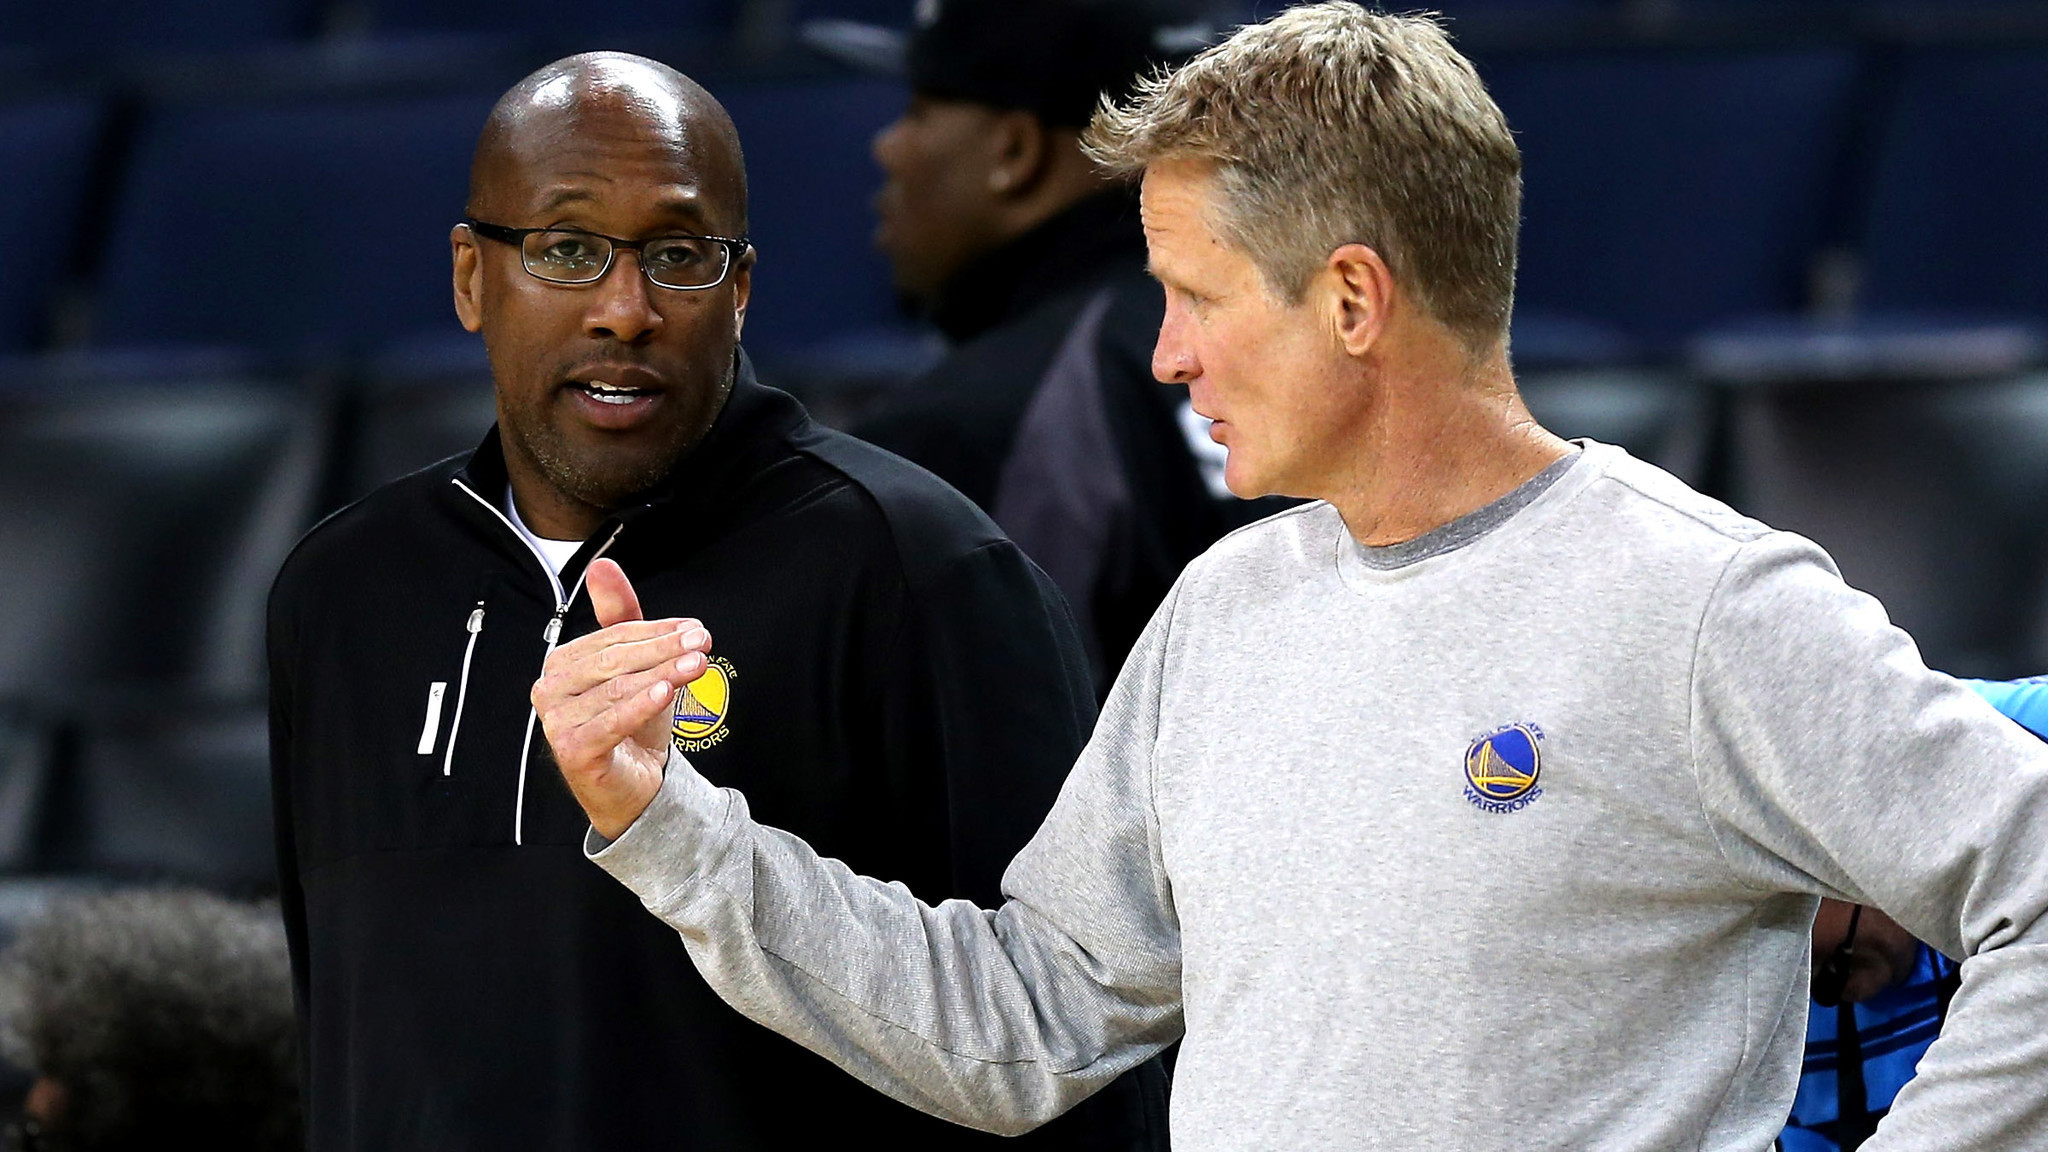 Created At 2017 06 03 0714 Dormanr 70001 Cadillac Escalade 19992000 Tail Light Circuit Boards Sportsinquirernet Mike Brown 11 0 Coaching The Warriors In Nba Playoffs Has Ailing Steve Kerrs Back